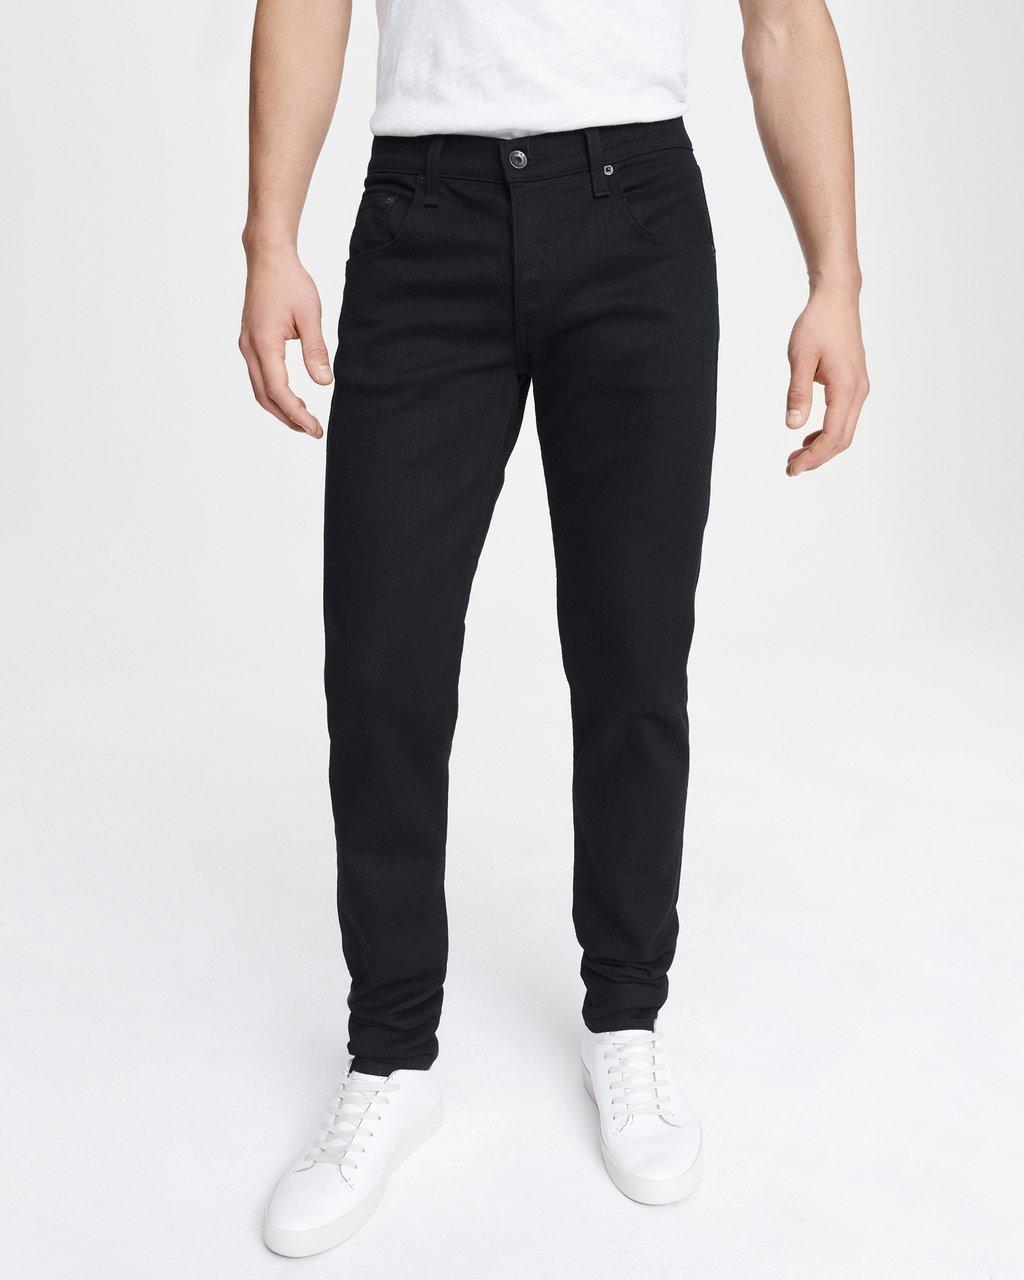 FIT 1 IN BLACK - 30 INCH INSEAM AVAILABLE